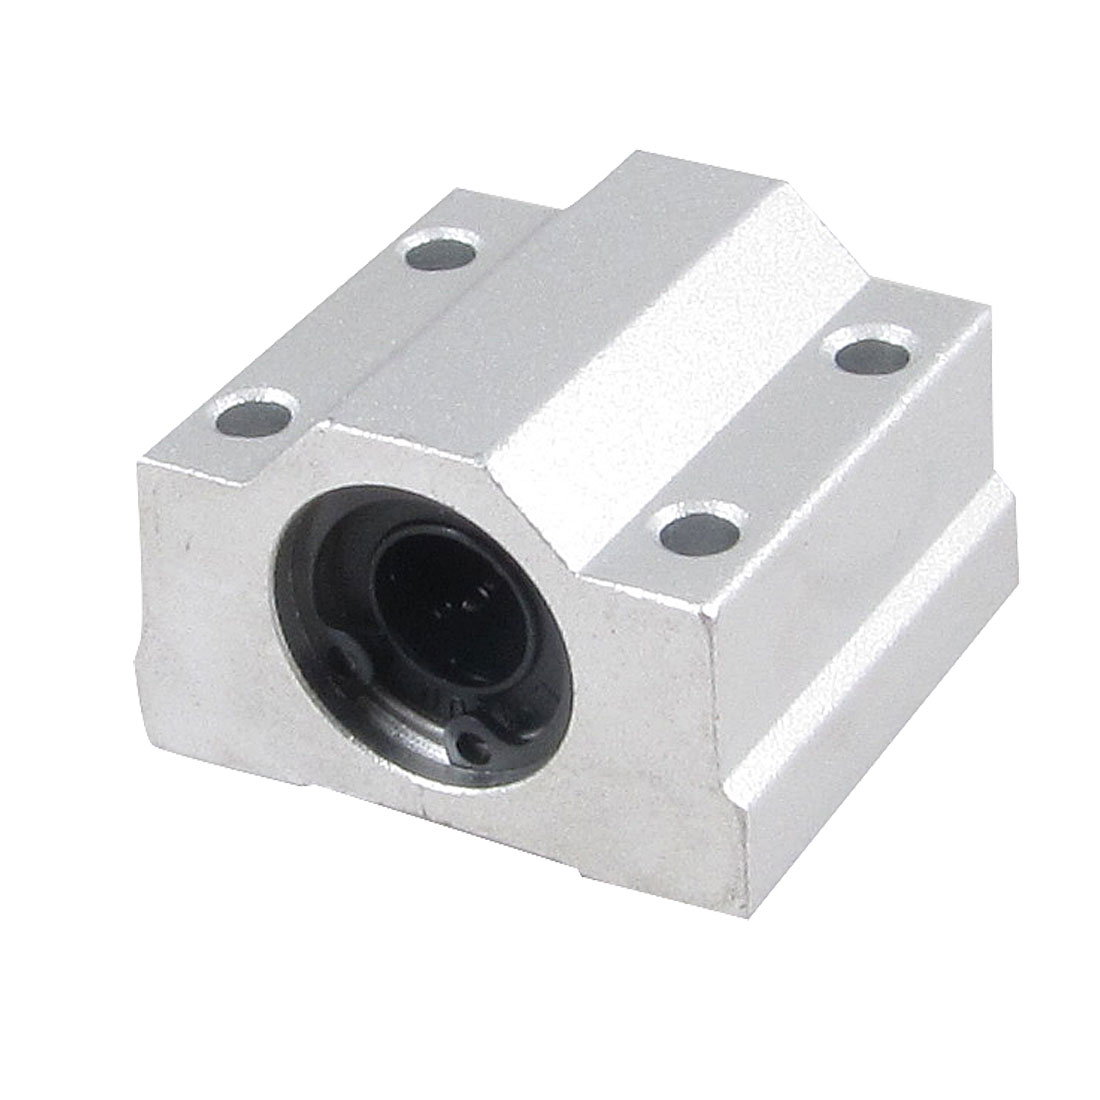 SCS10UU 10mm Metal Linear Motion Ball Bearing Slide Bushing